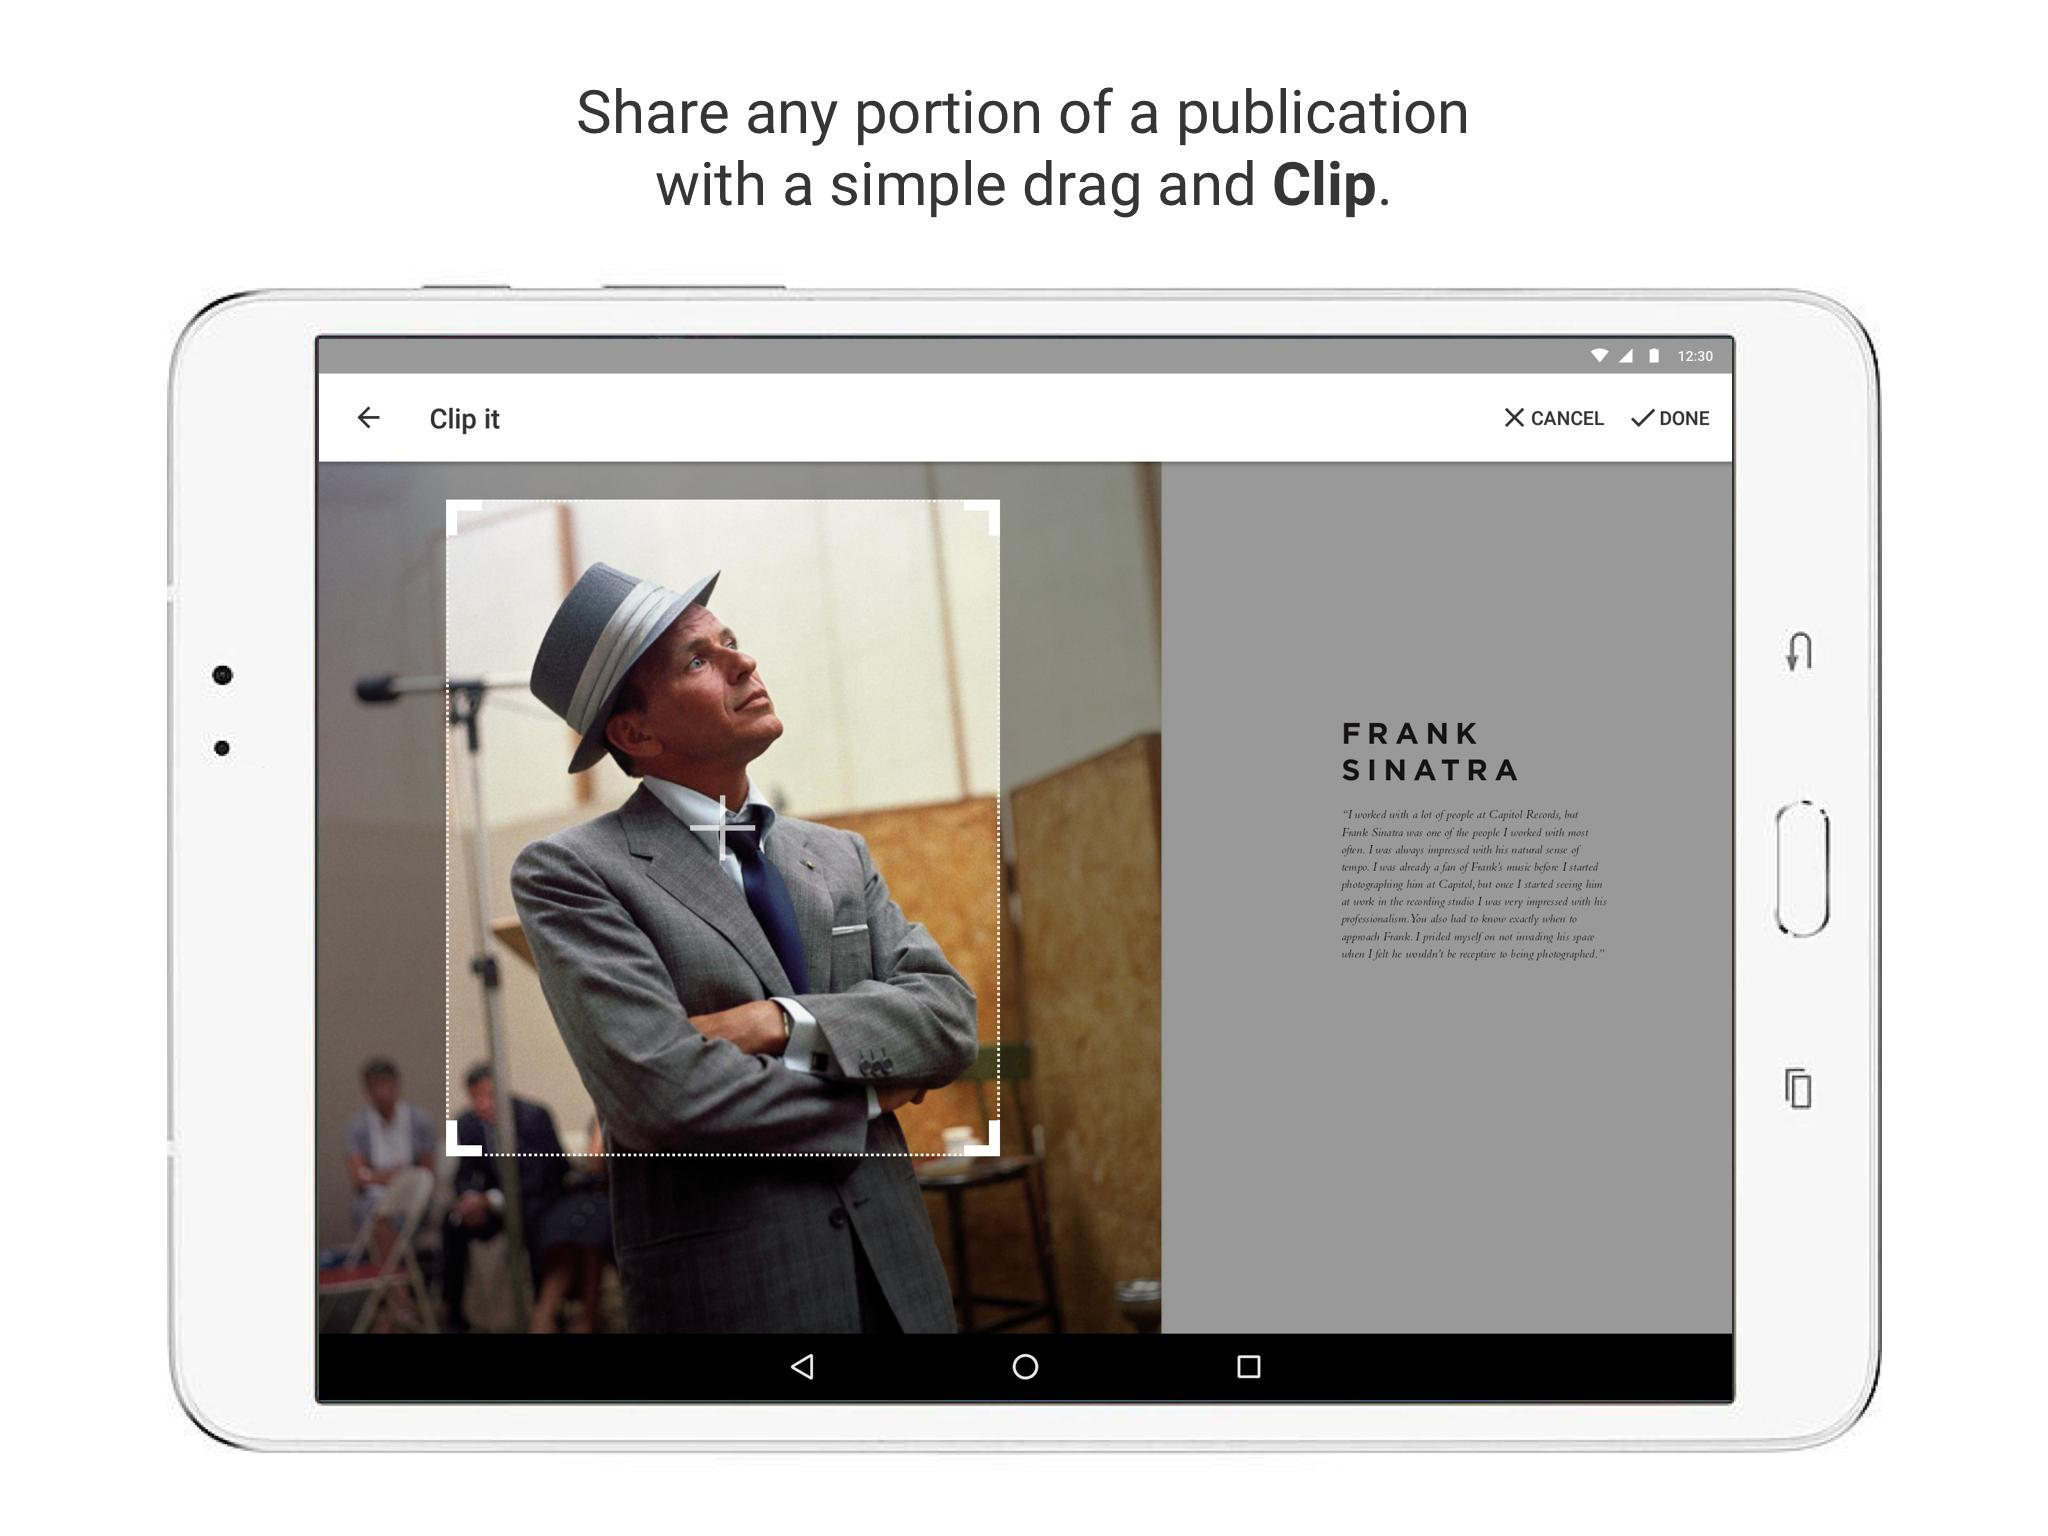 Issuu for Android - APK Download